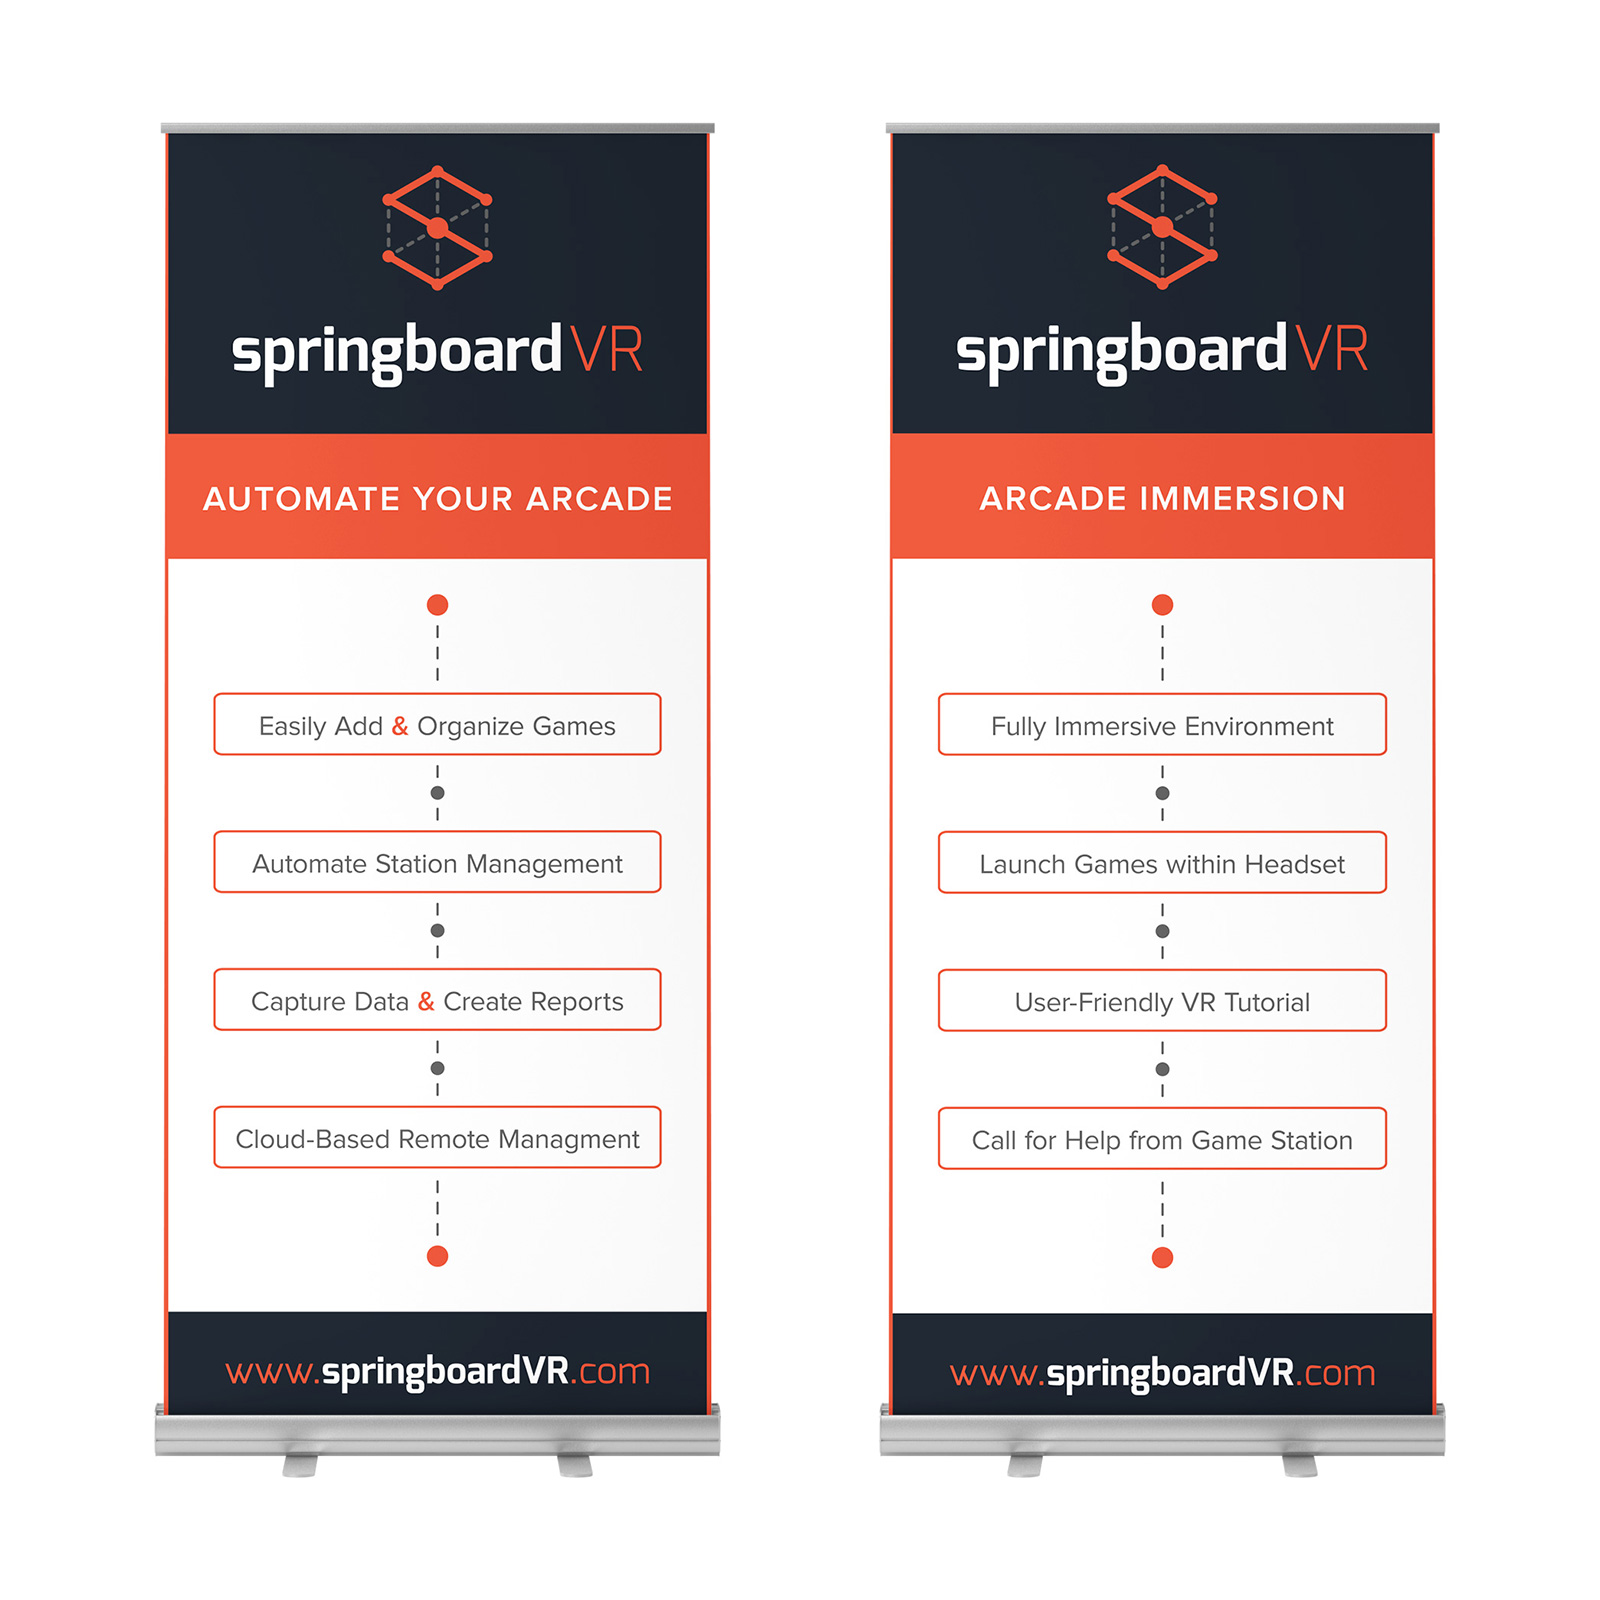 SpringboardVR-popups-together.jpg